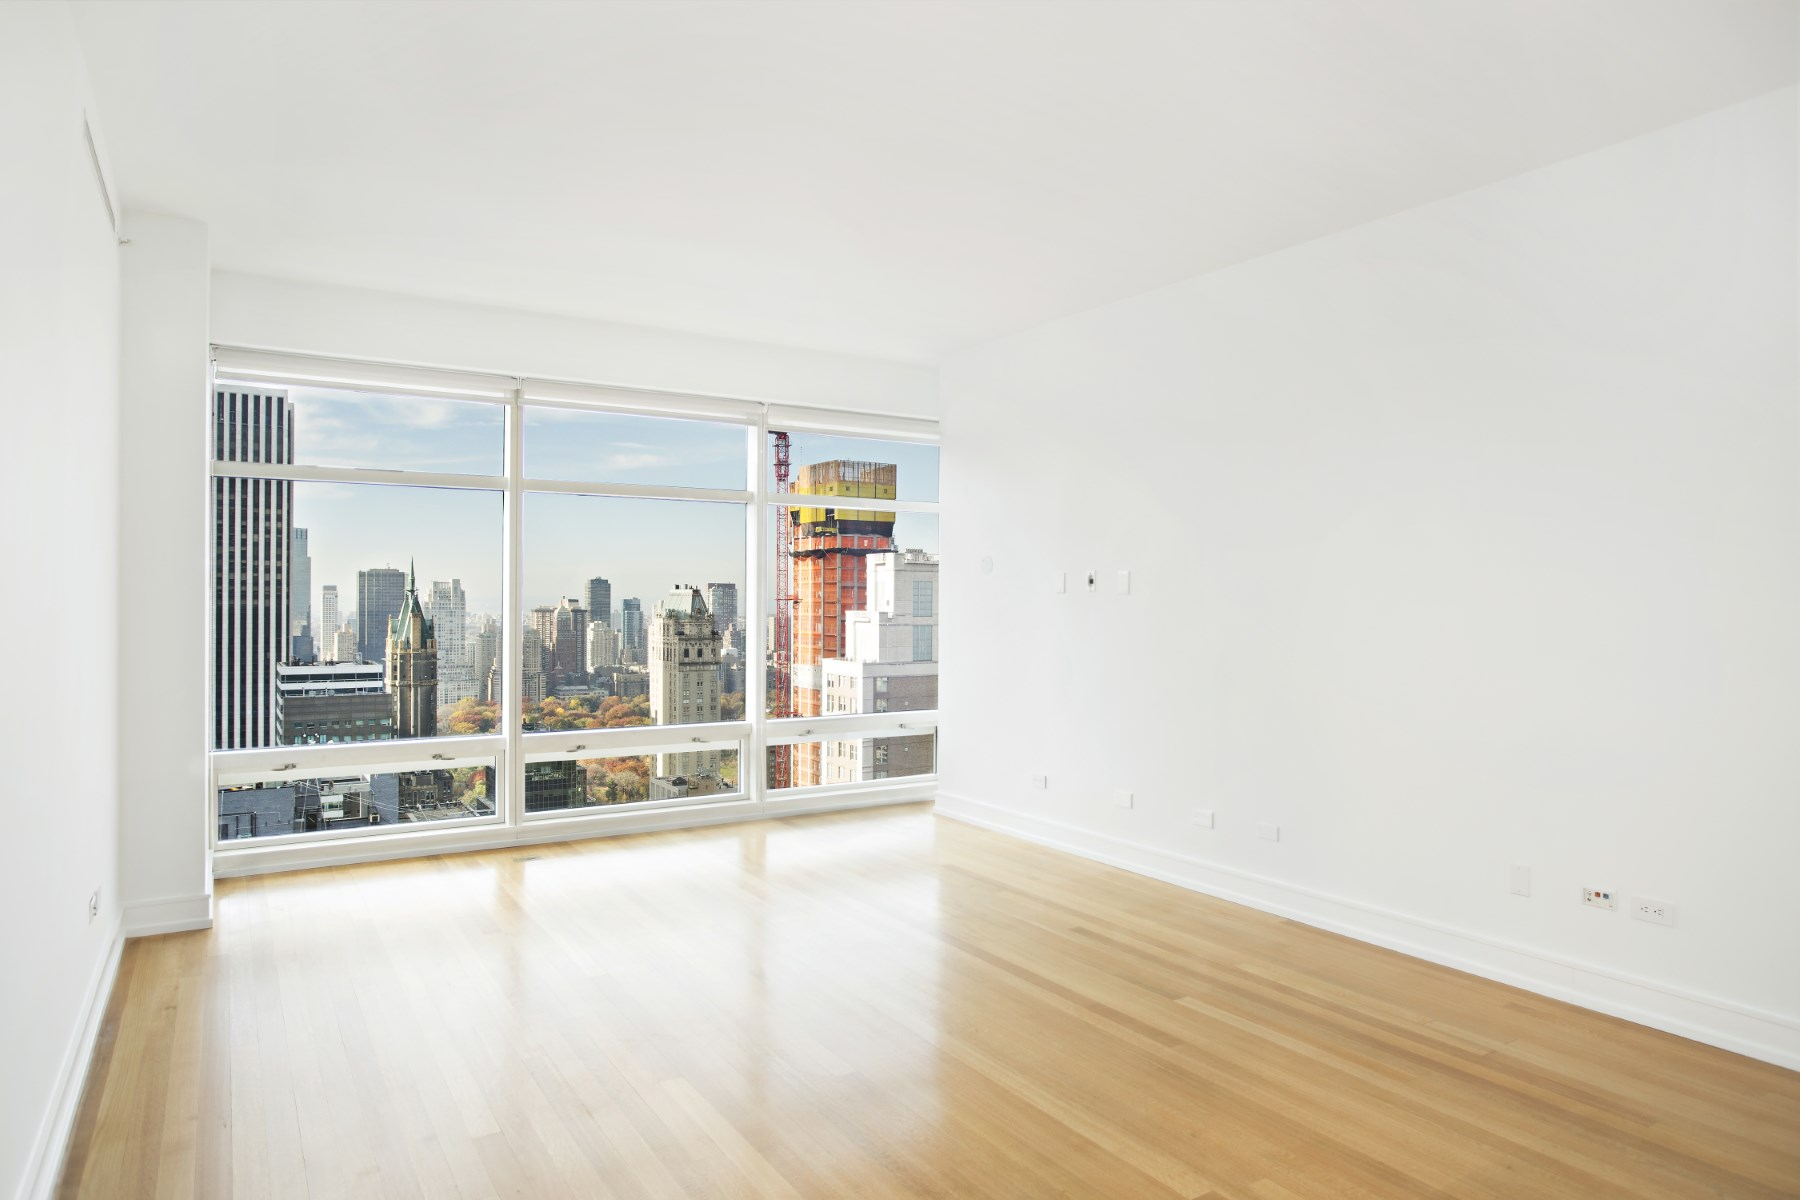 Condominium for Rent at One Beacon Court 151 East 58th Street Apt 35F Upper East Side, New York, New York, 10022 United States